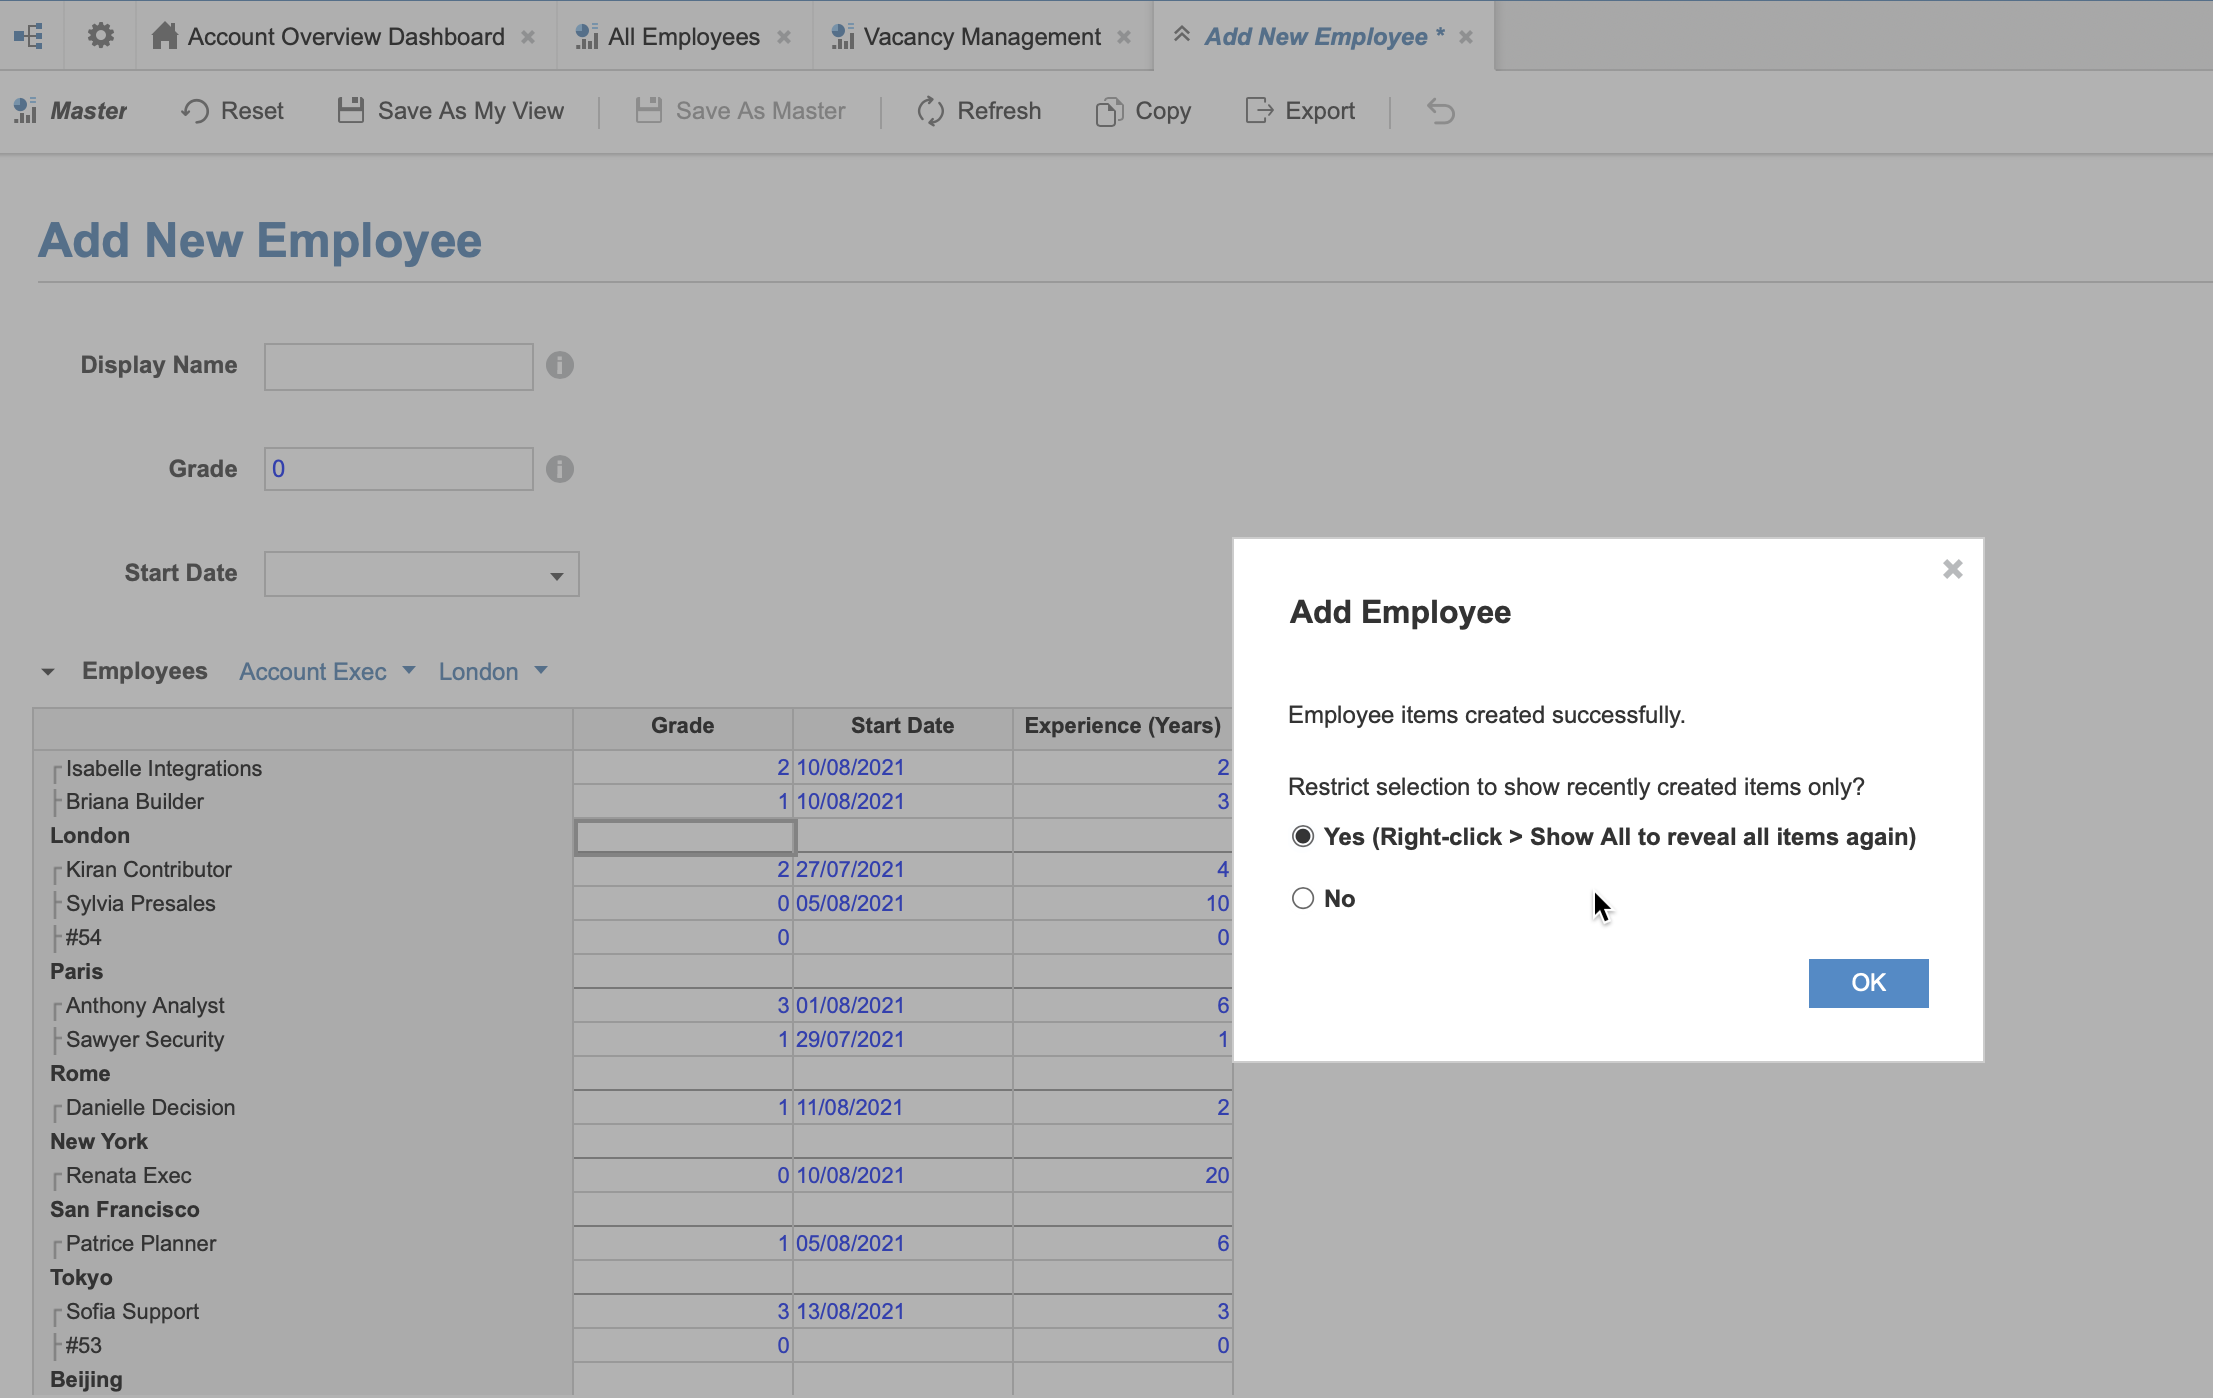 A dashboard with the name Add New Employee displays, with a dialog that prompts users to select Yes to restrict the selection to recently created items, or No to display all items.